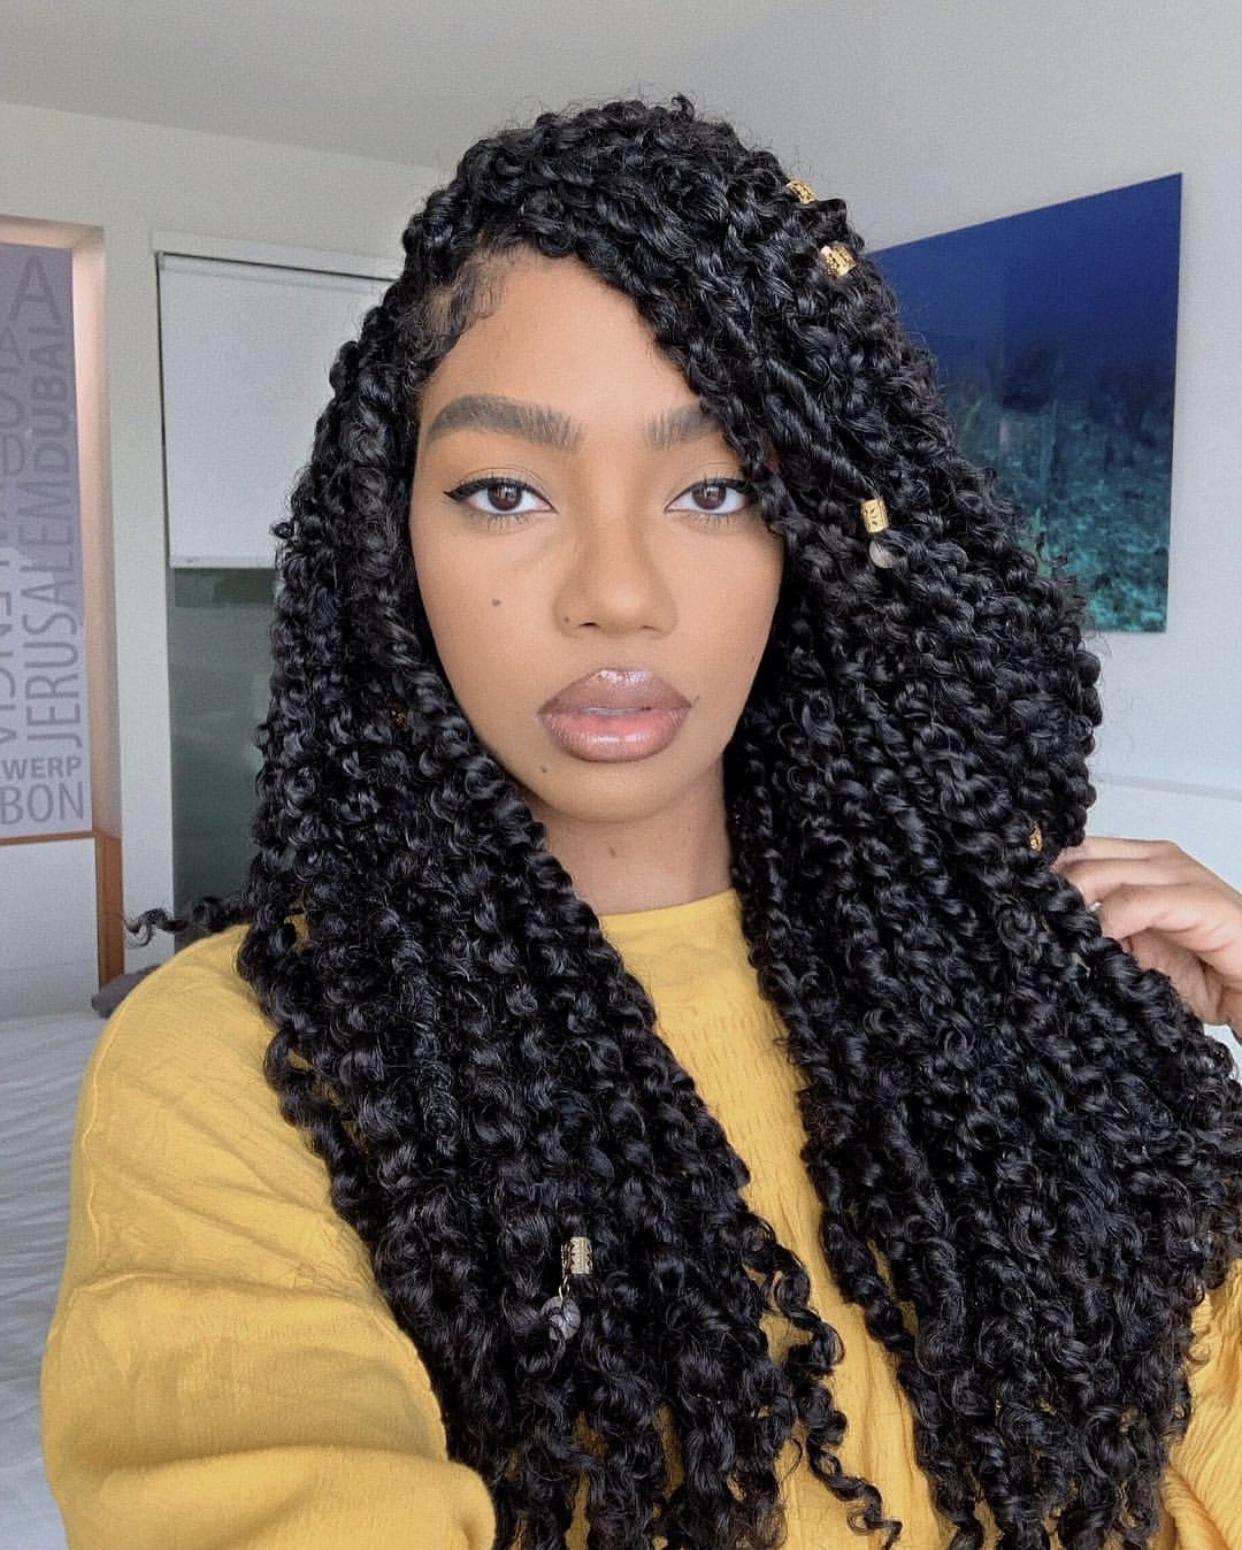 10 Passion Twist Styles To Rock Right Now – Essence Intended For Most Popular Purple Passion Chunky Braided Hairstyles (View 12 of 20)